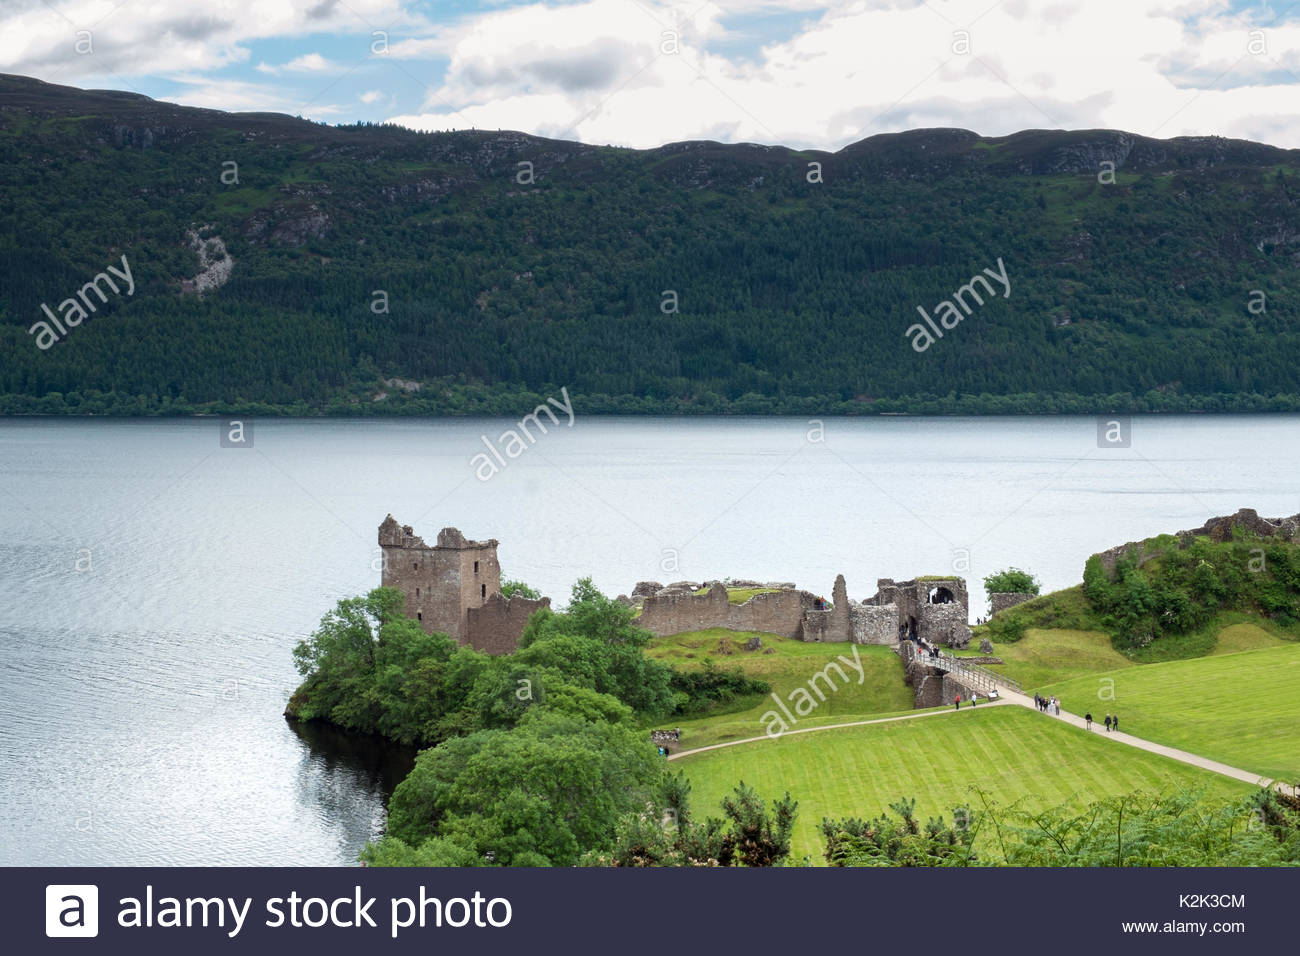 loch ness dating site Historic sites around inverness & loch ness dating to between the boleskine burial ground is one of the most famous landmarks on the south side of loch ness.